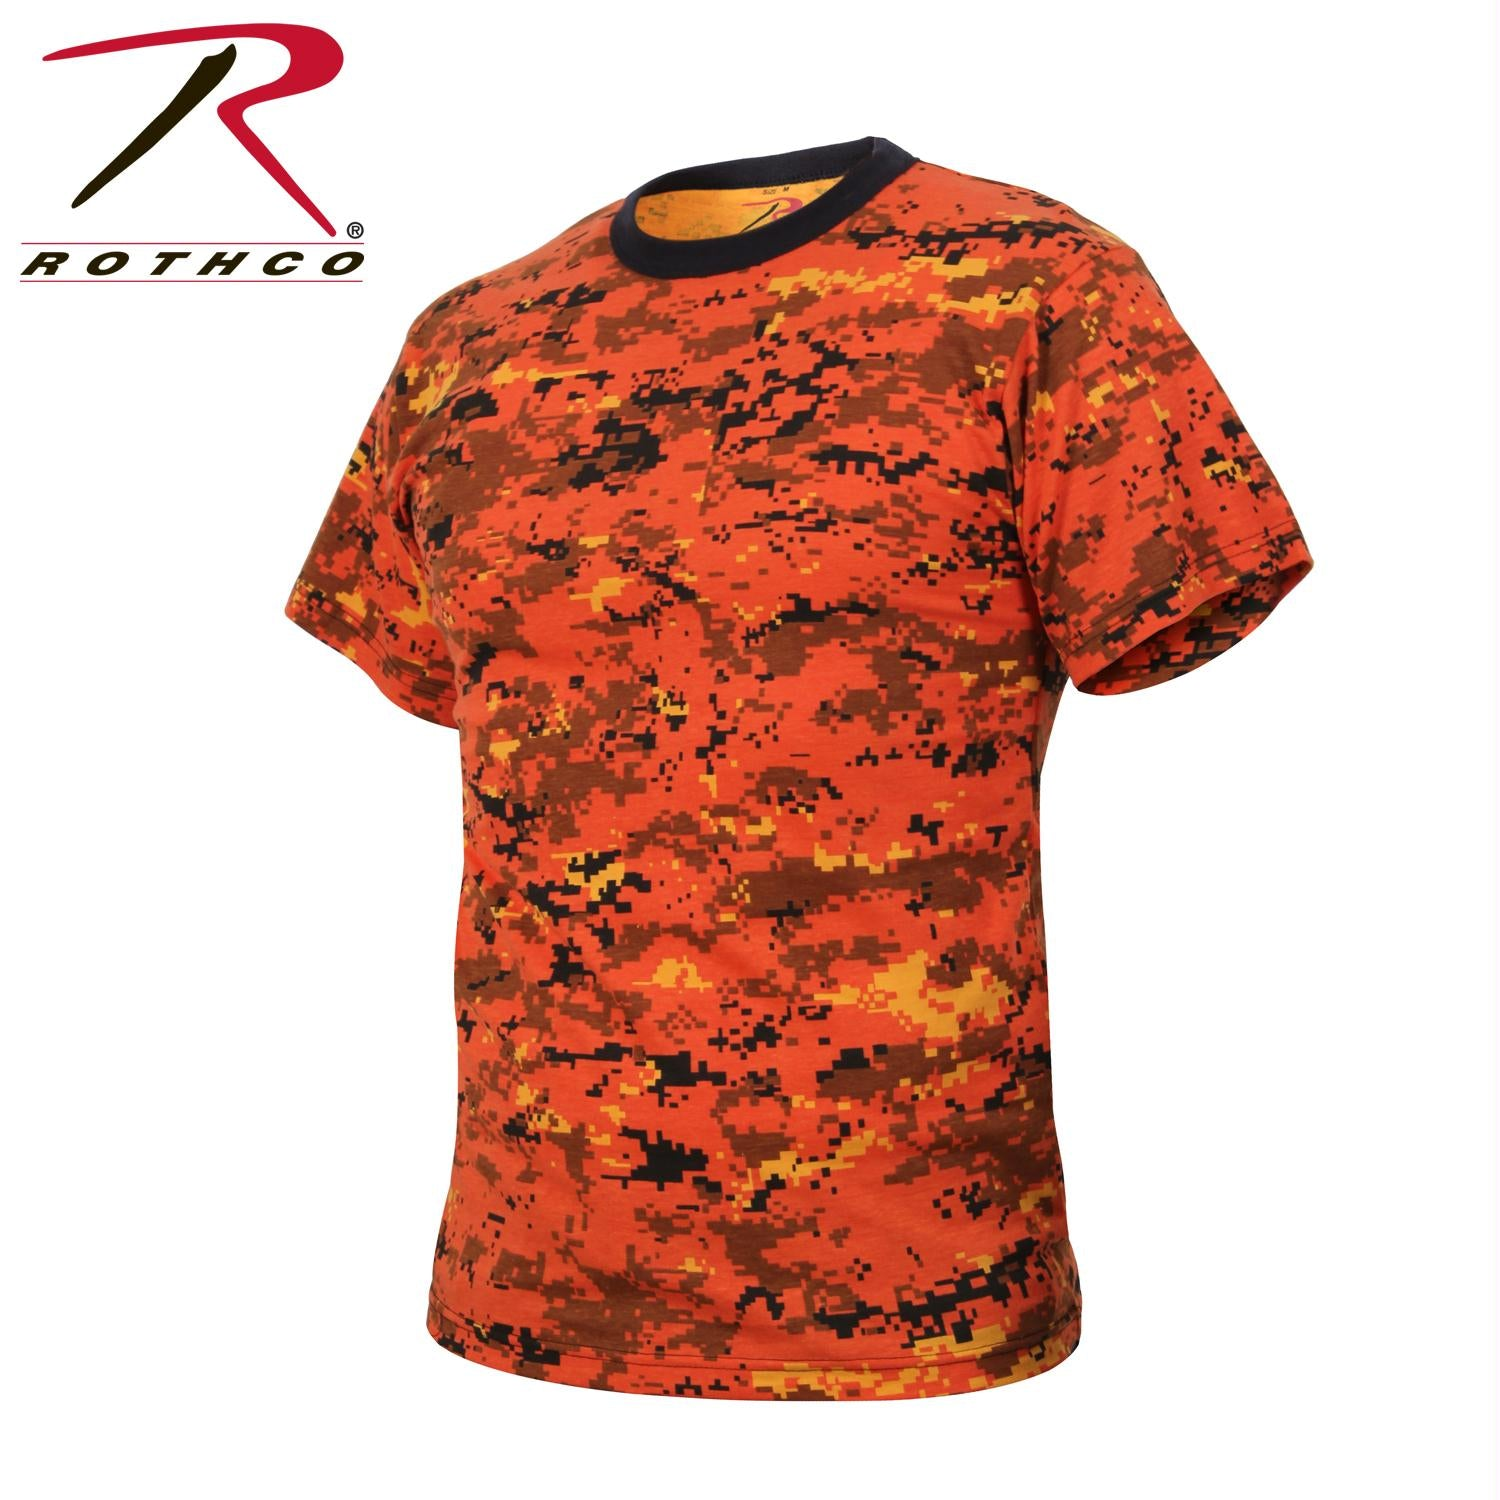 Rothco Digital Camo T-Shirt - Orange Digital Camo / XL